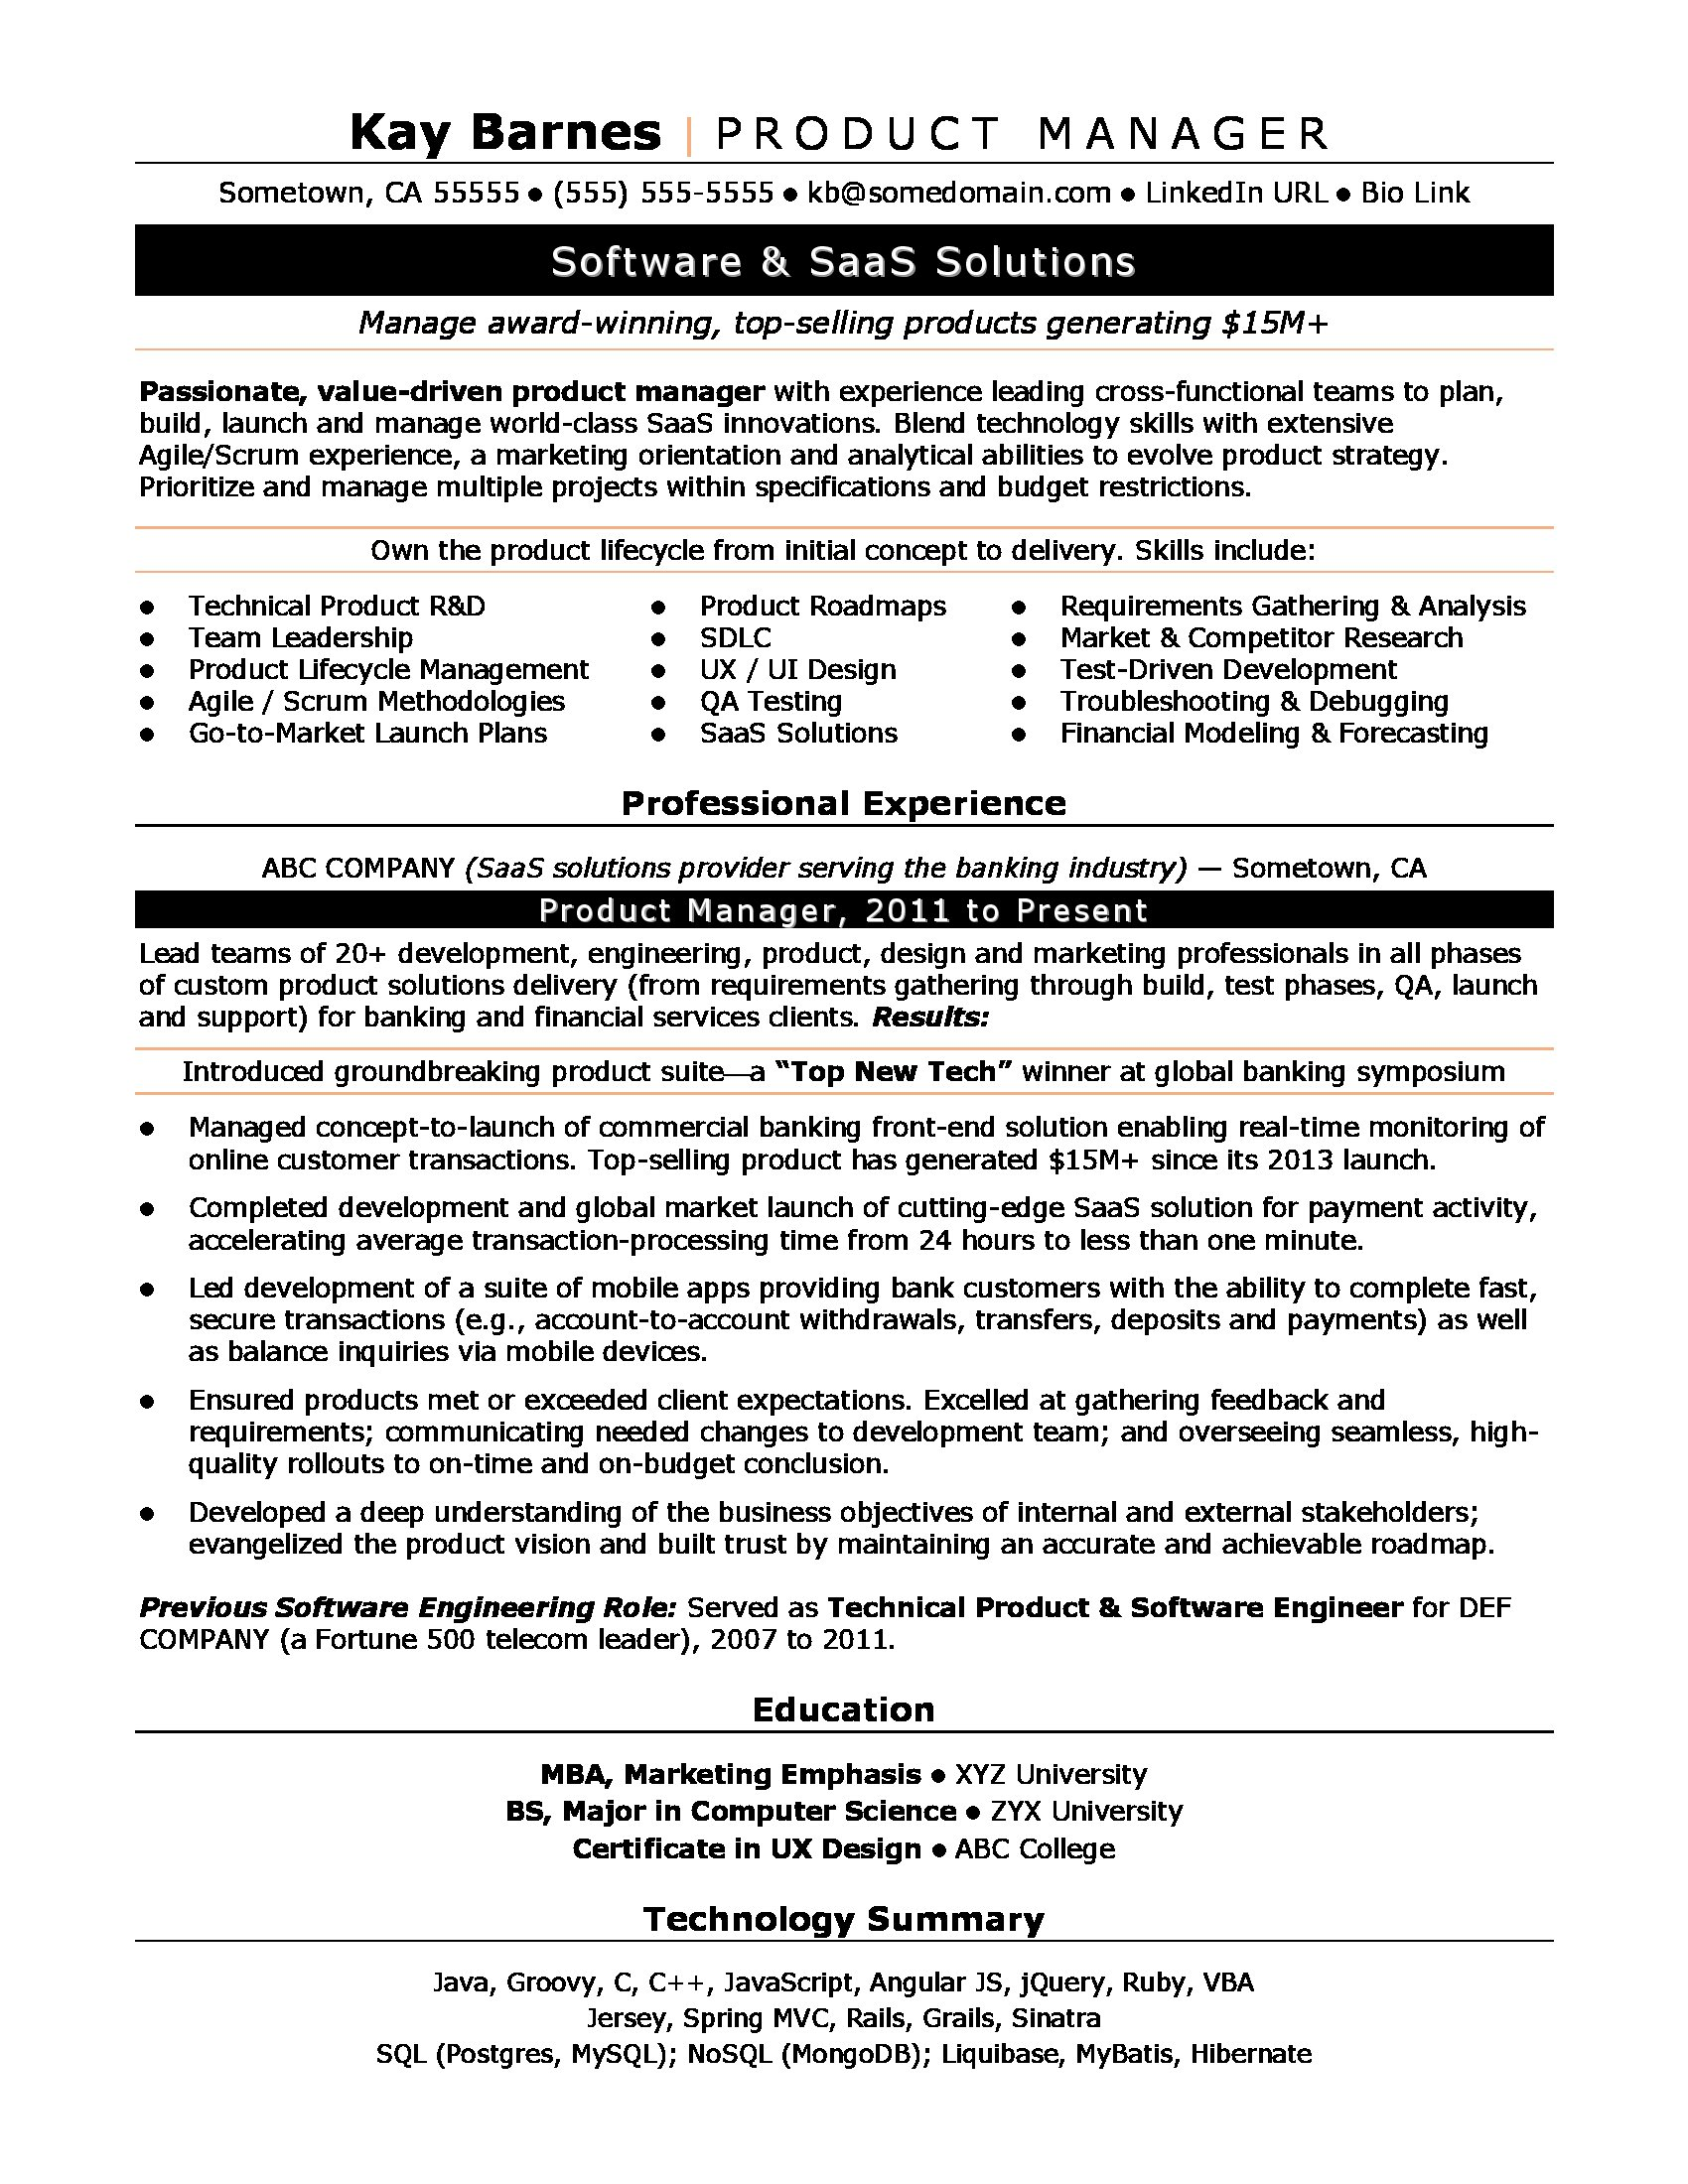 product manager resume sample monster for position productmanager generator service Resume Resume For Product Manager Position